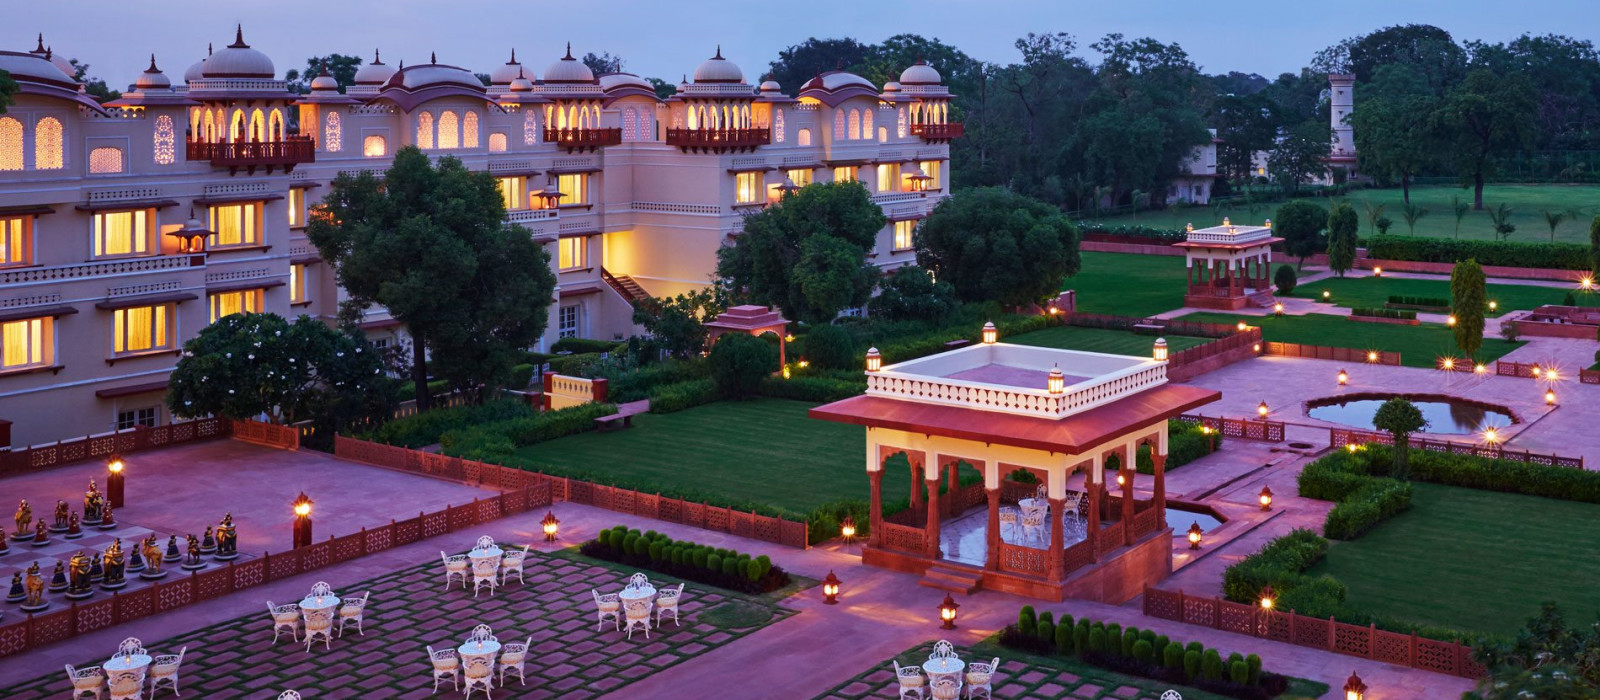 Hotel Jai Mahal Palace North India